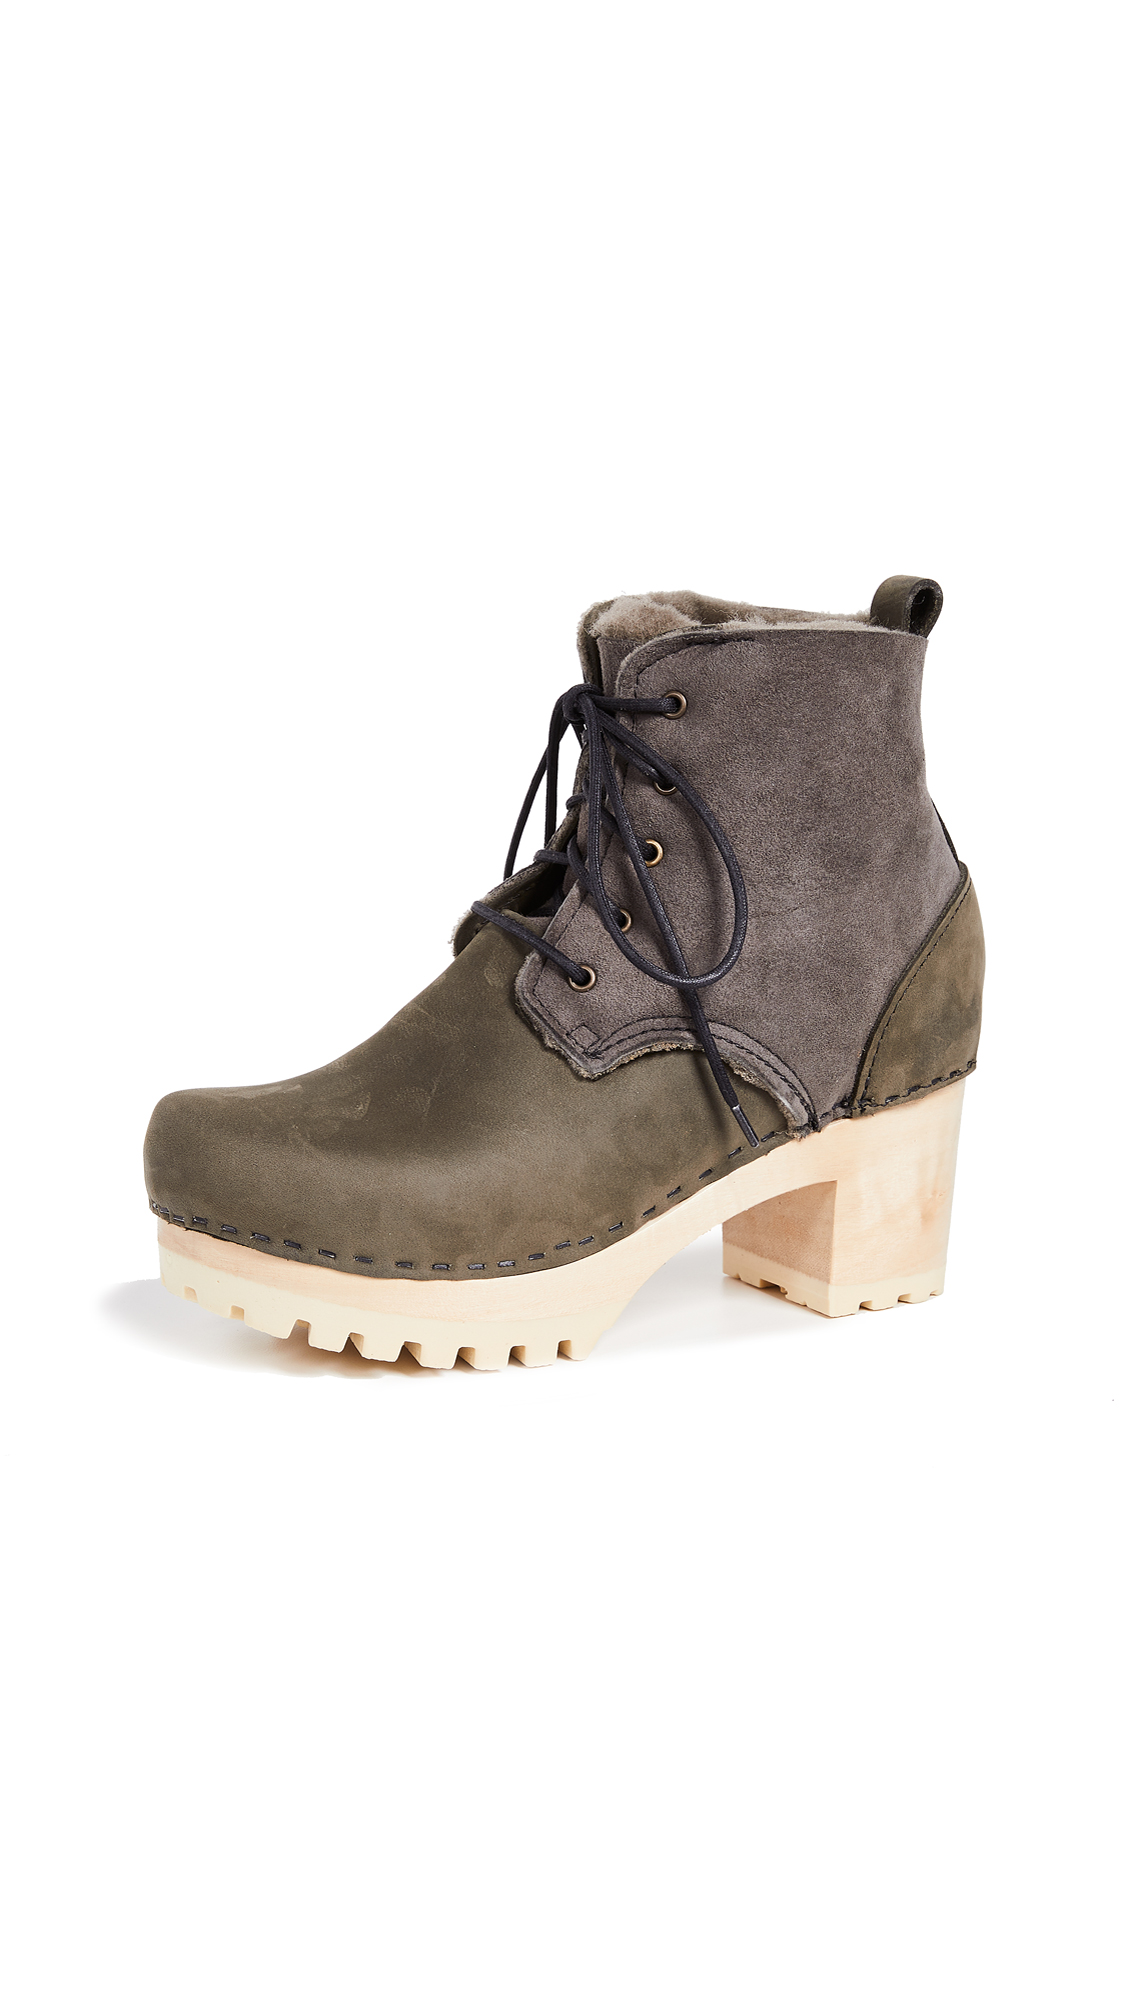 No.6 Lander Lace Up Shearling Boots - Storm